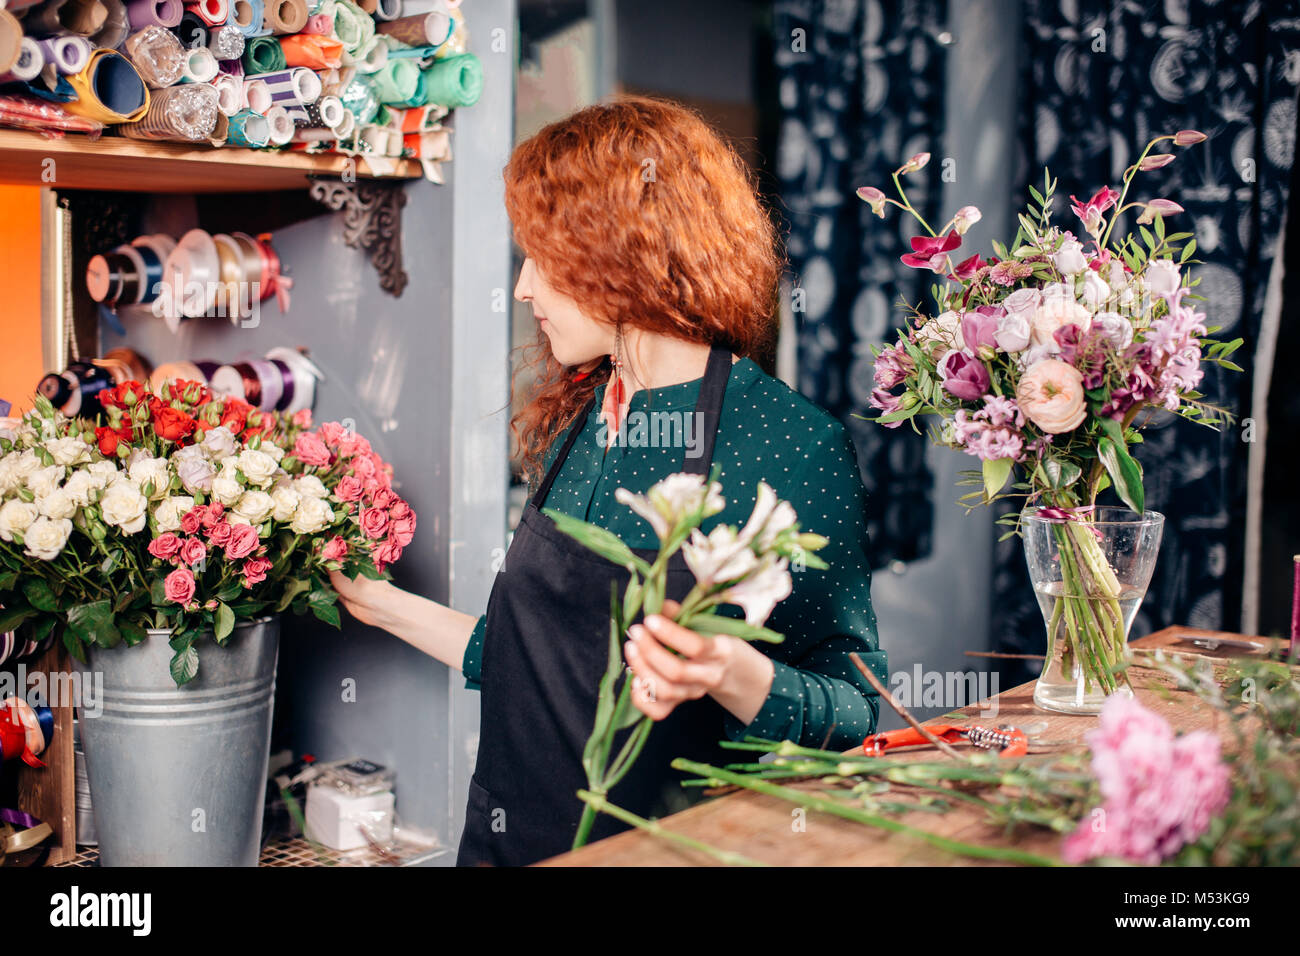 woman making bouquet of different roses. florist working at flower shop - Stock Image